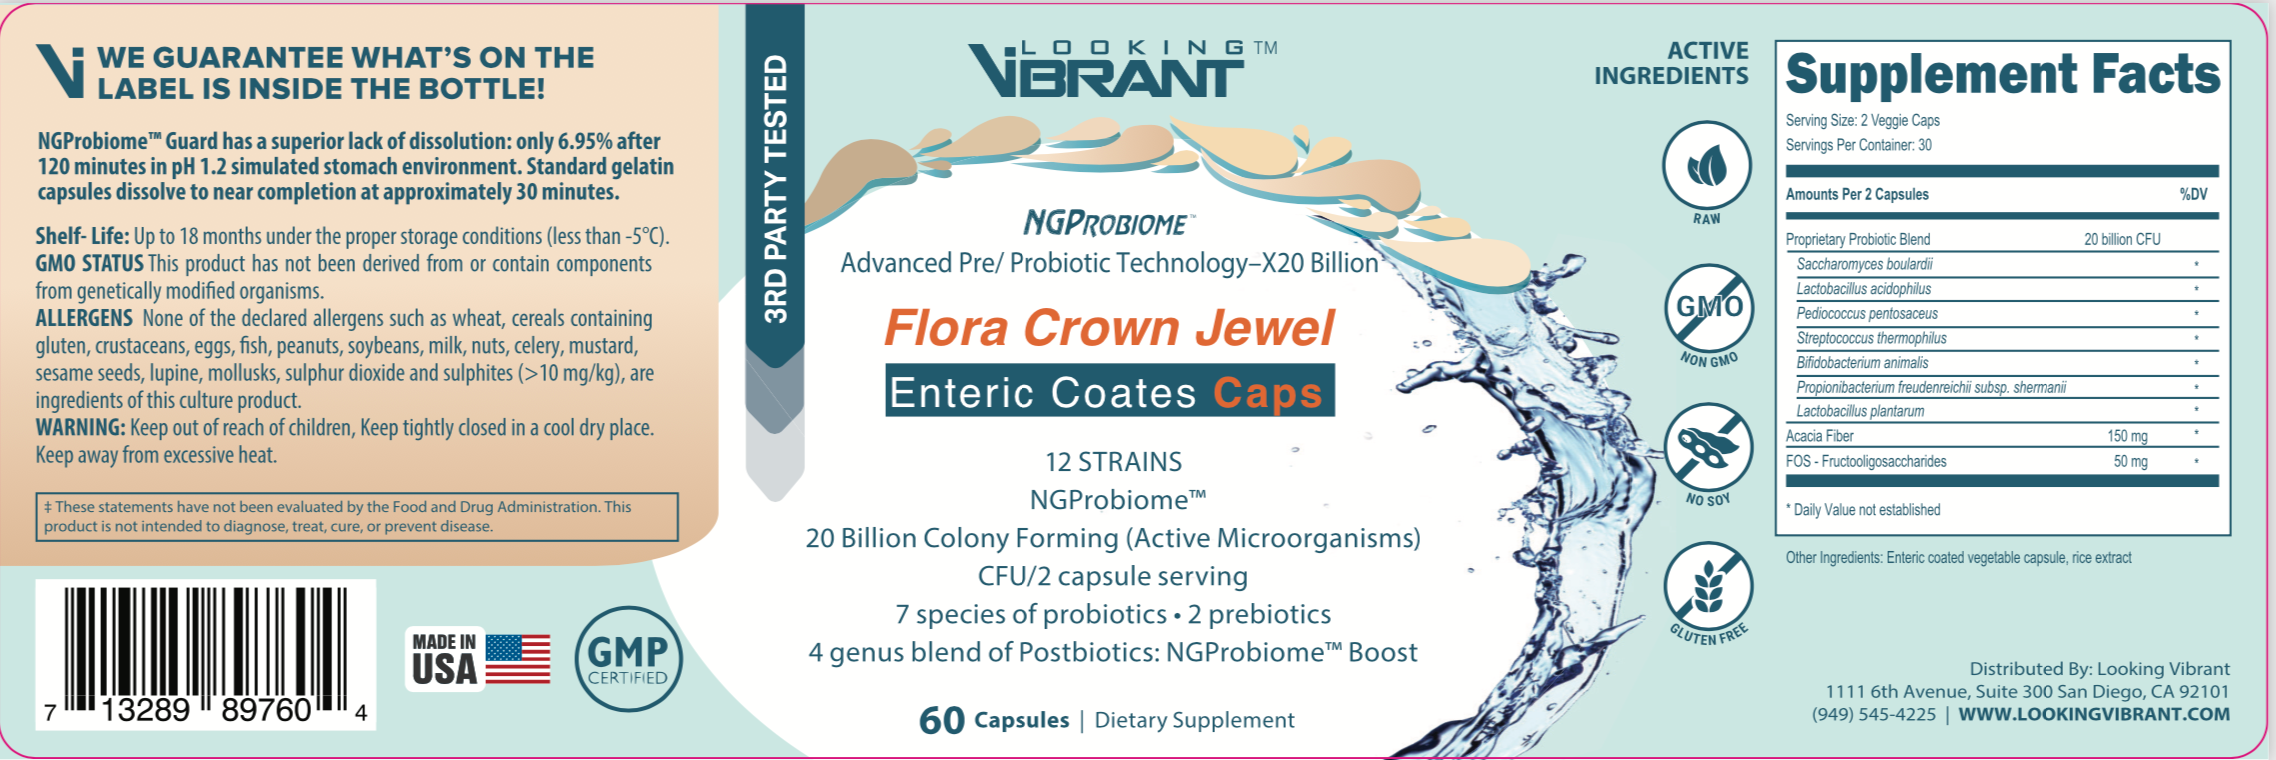 Advanced Pre/Probiotic Technology-X20 - lookingvibrantcom